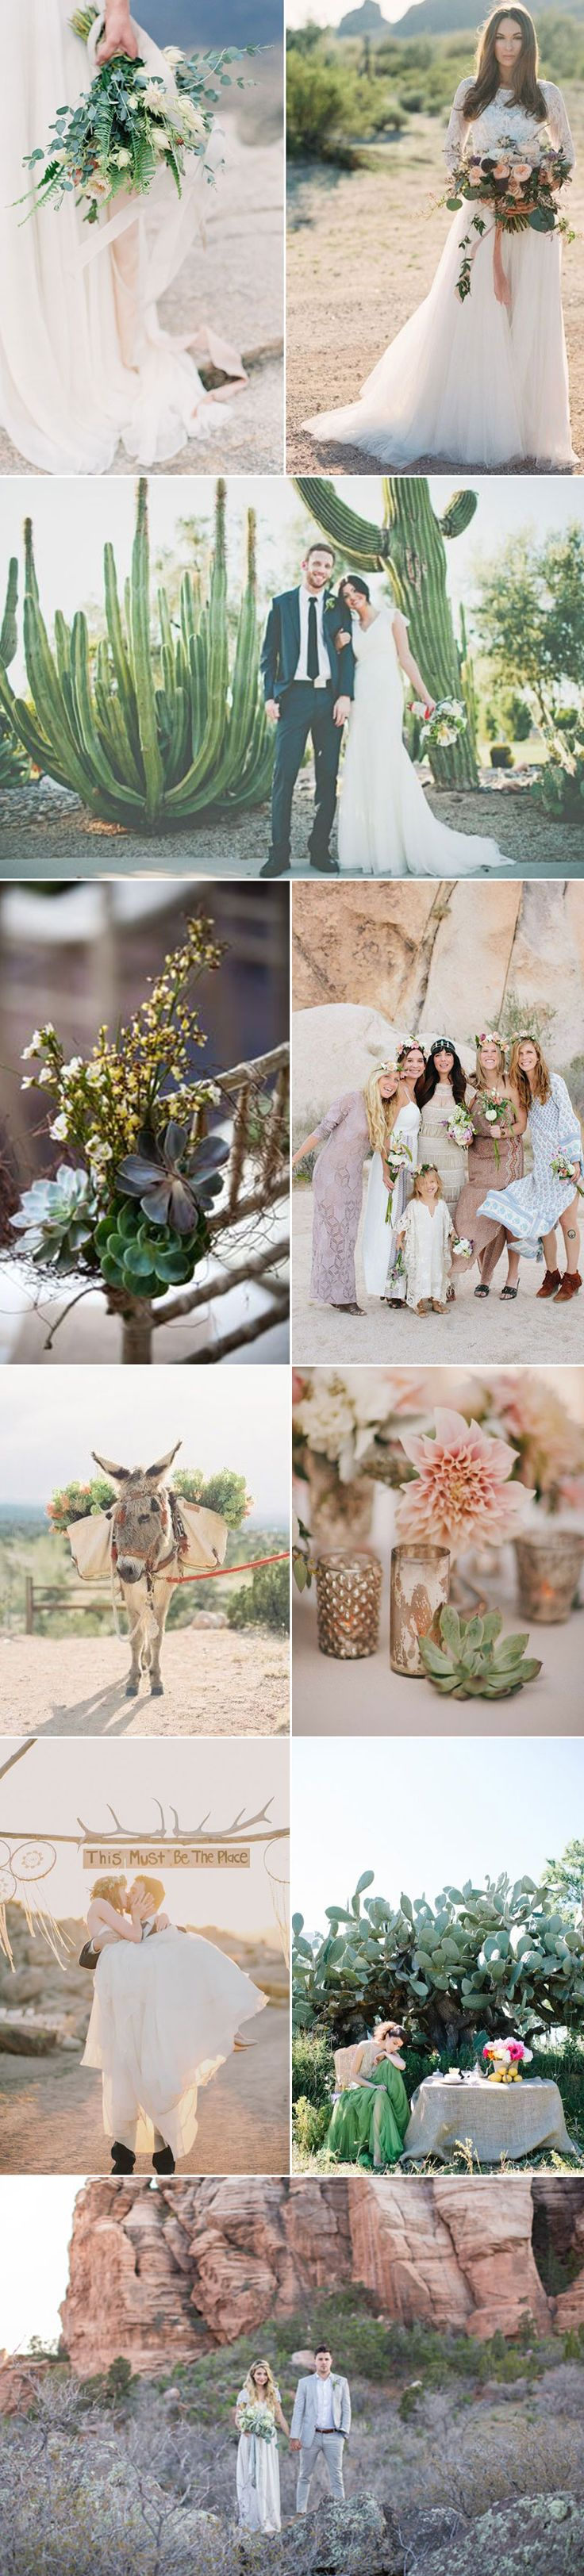 Desert boho chic wedding inspiration! How cute are all of these ideas?!